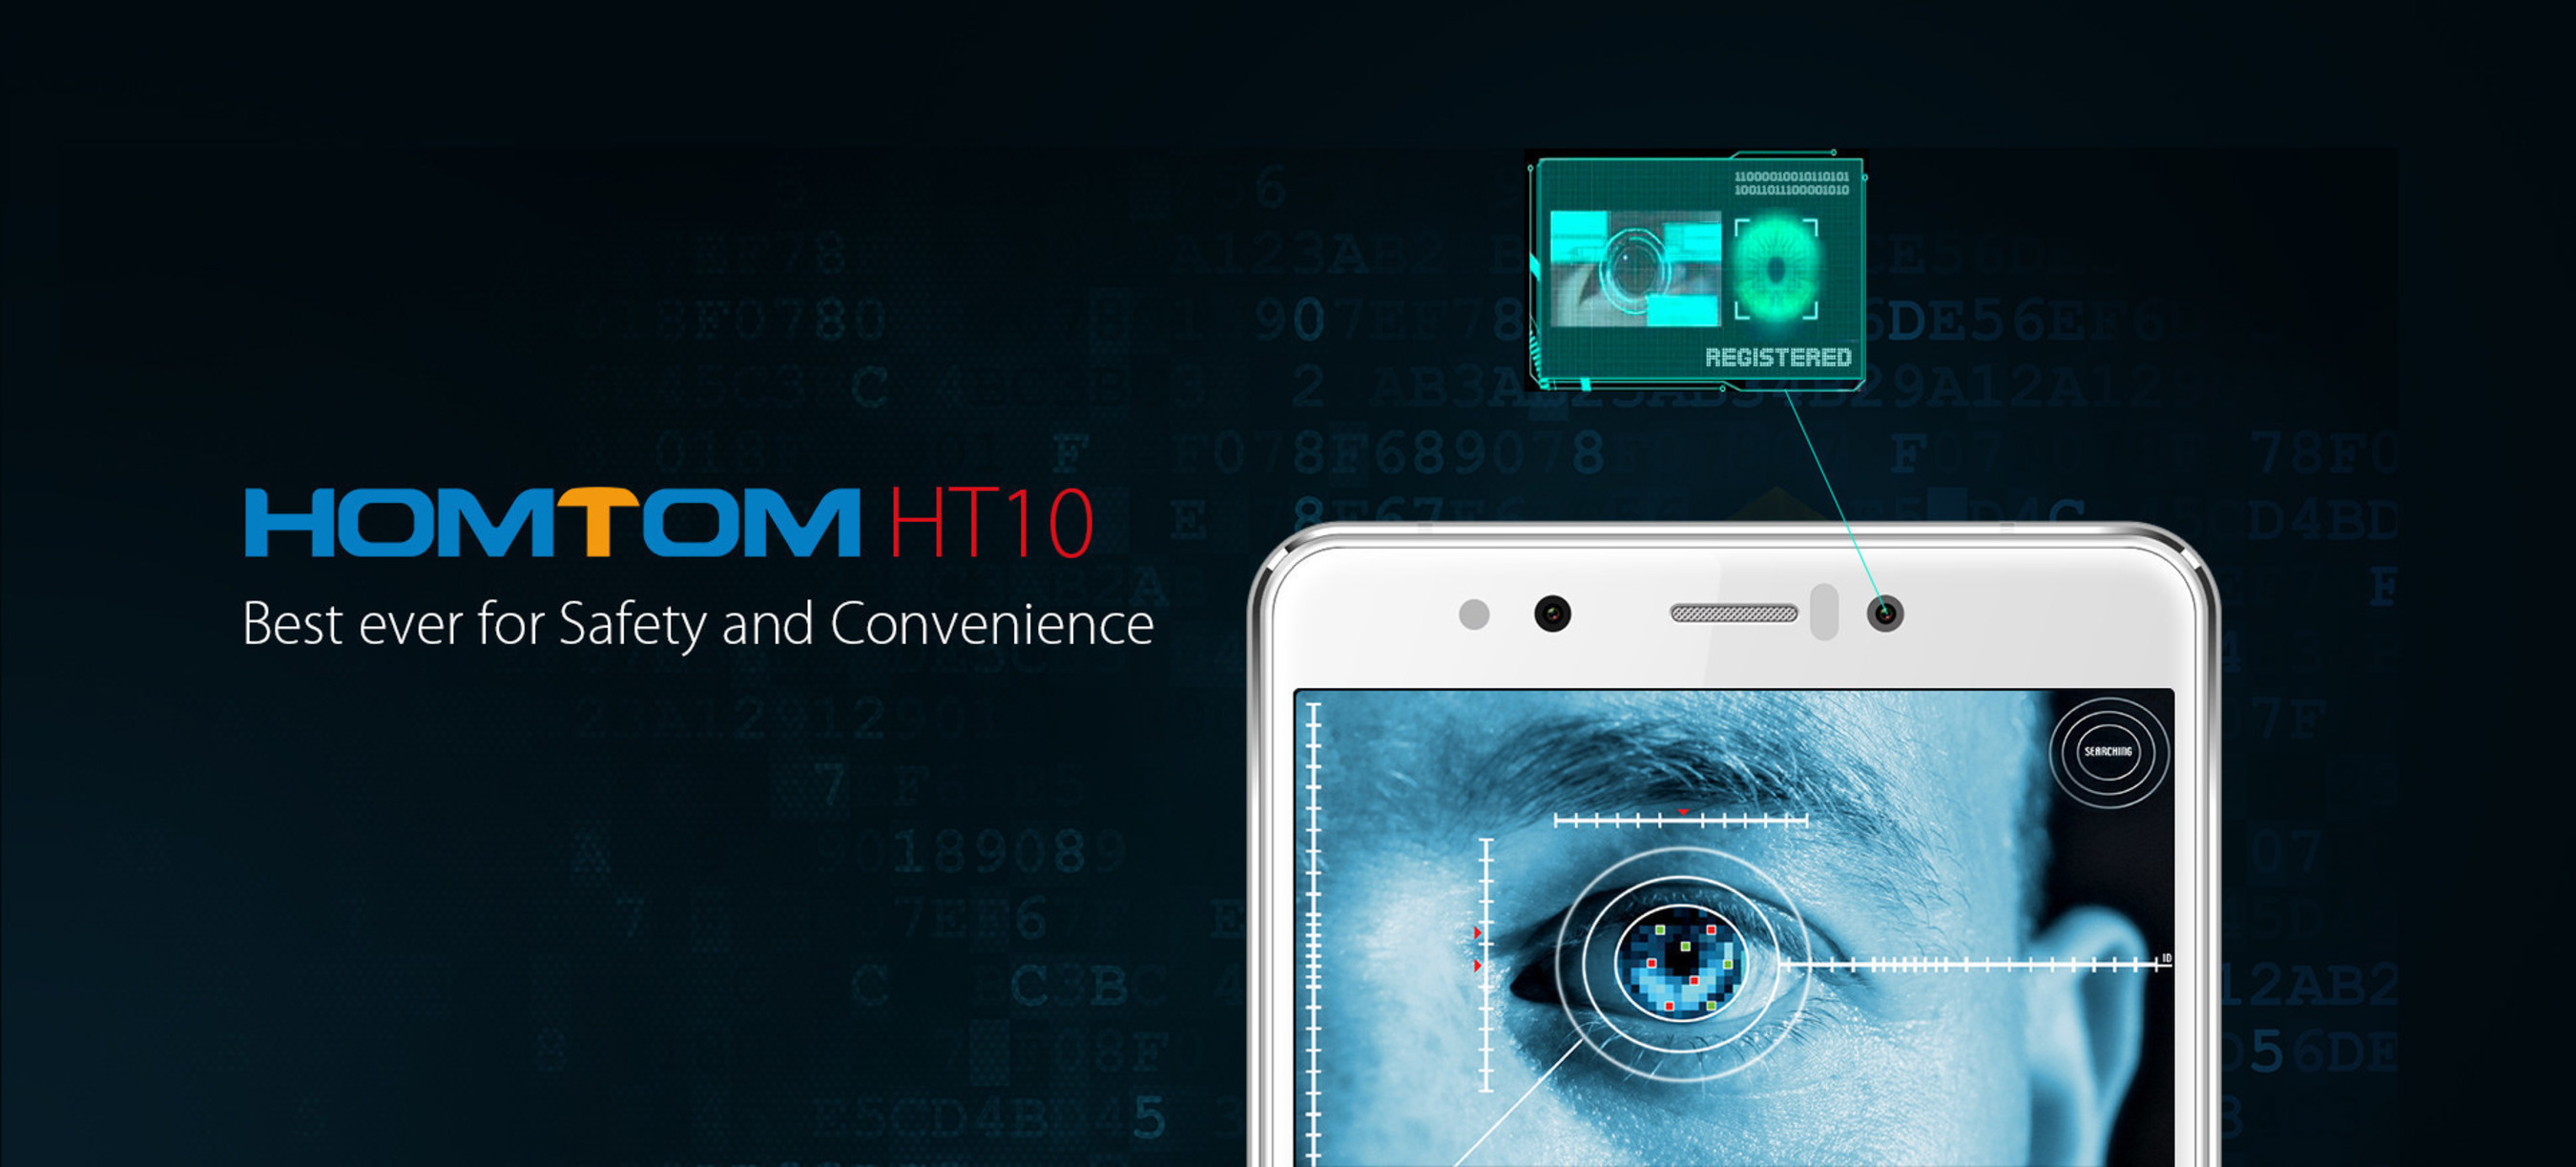 Advanced iris recognition technology makes the HOMTOM HT10 one of the most secure smartphones available on the market